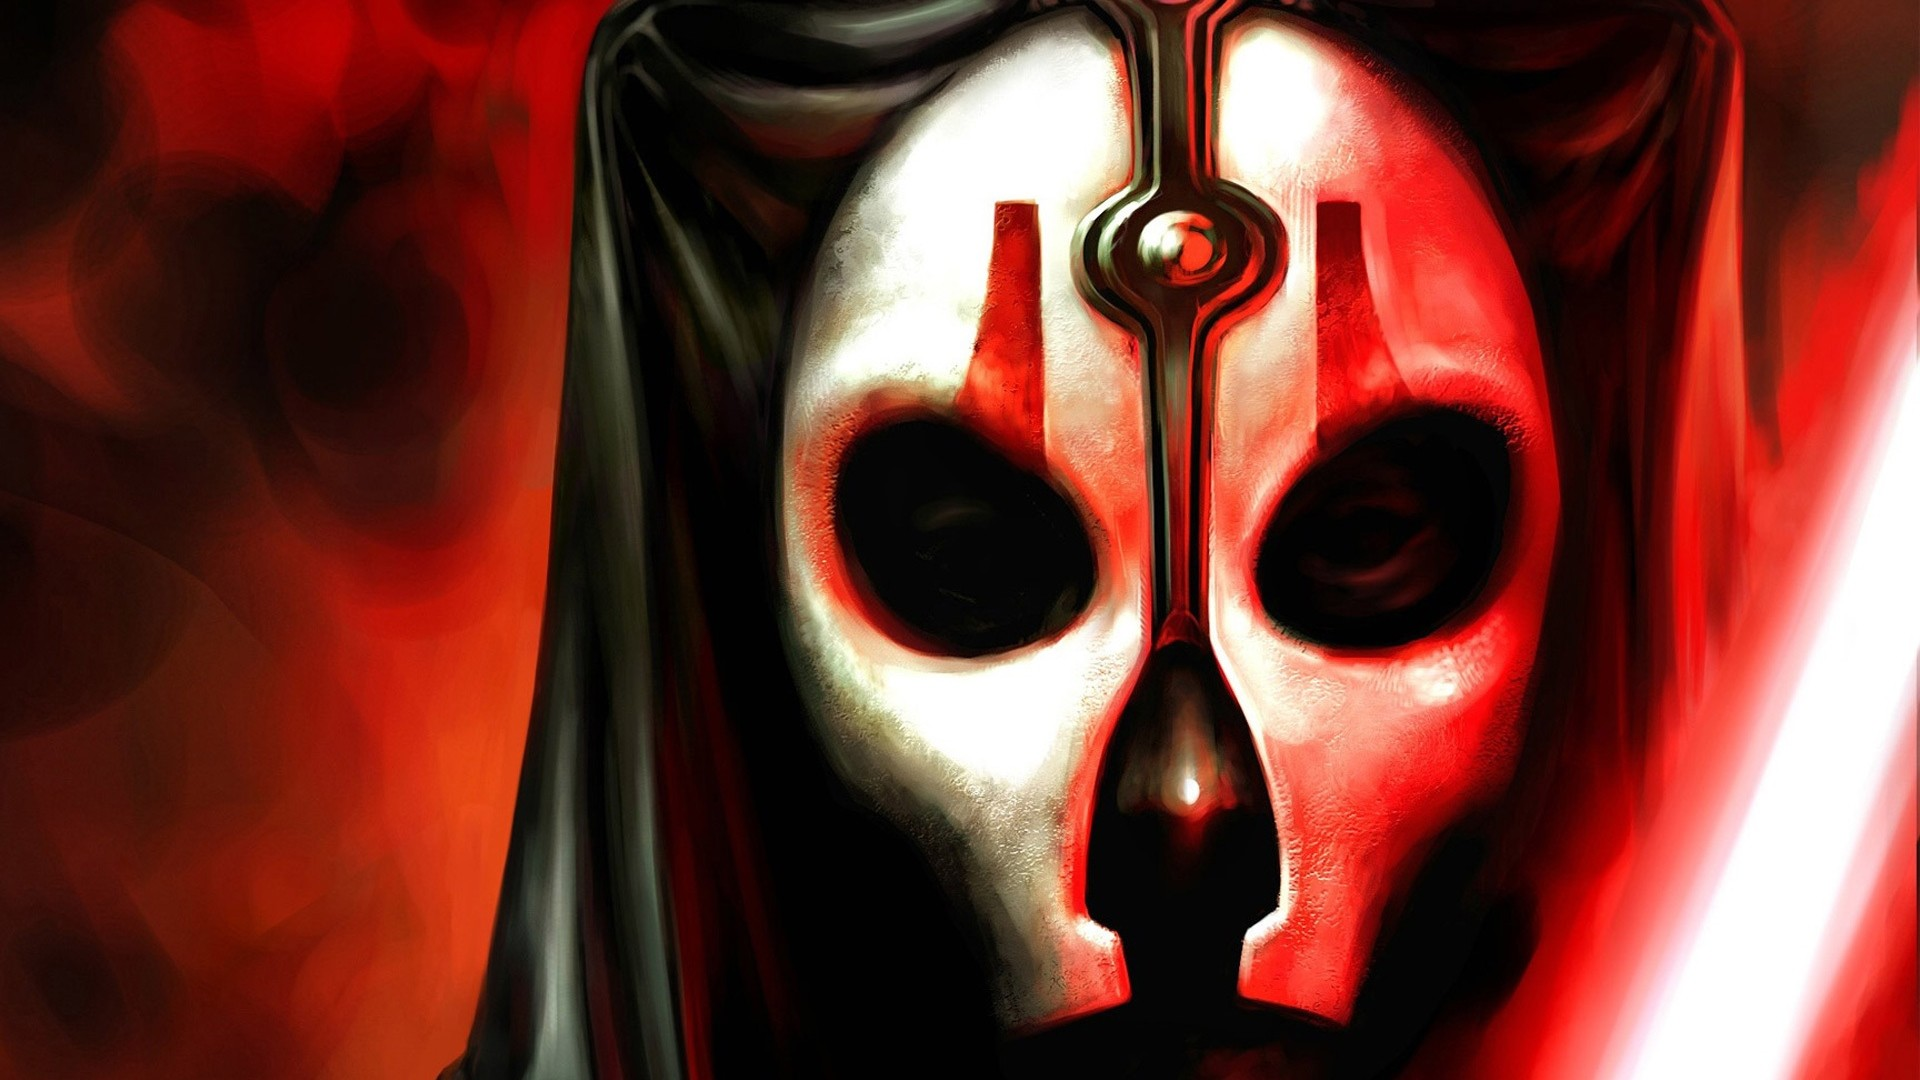 1920x1080  Wallpaper star wars, knights of the old republic, ii, 2, the